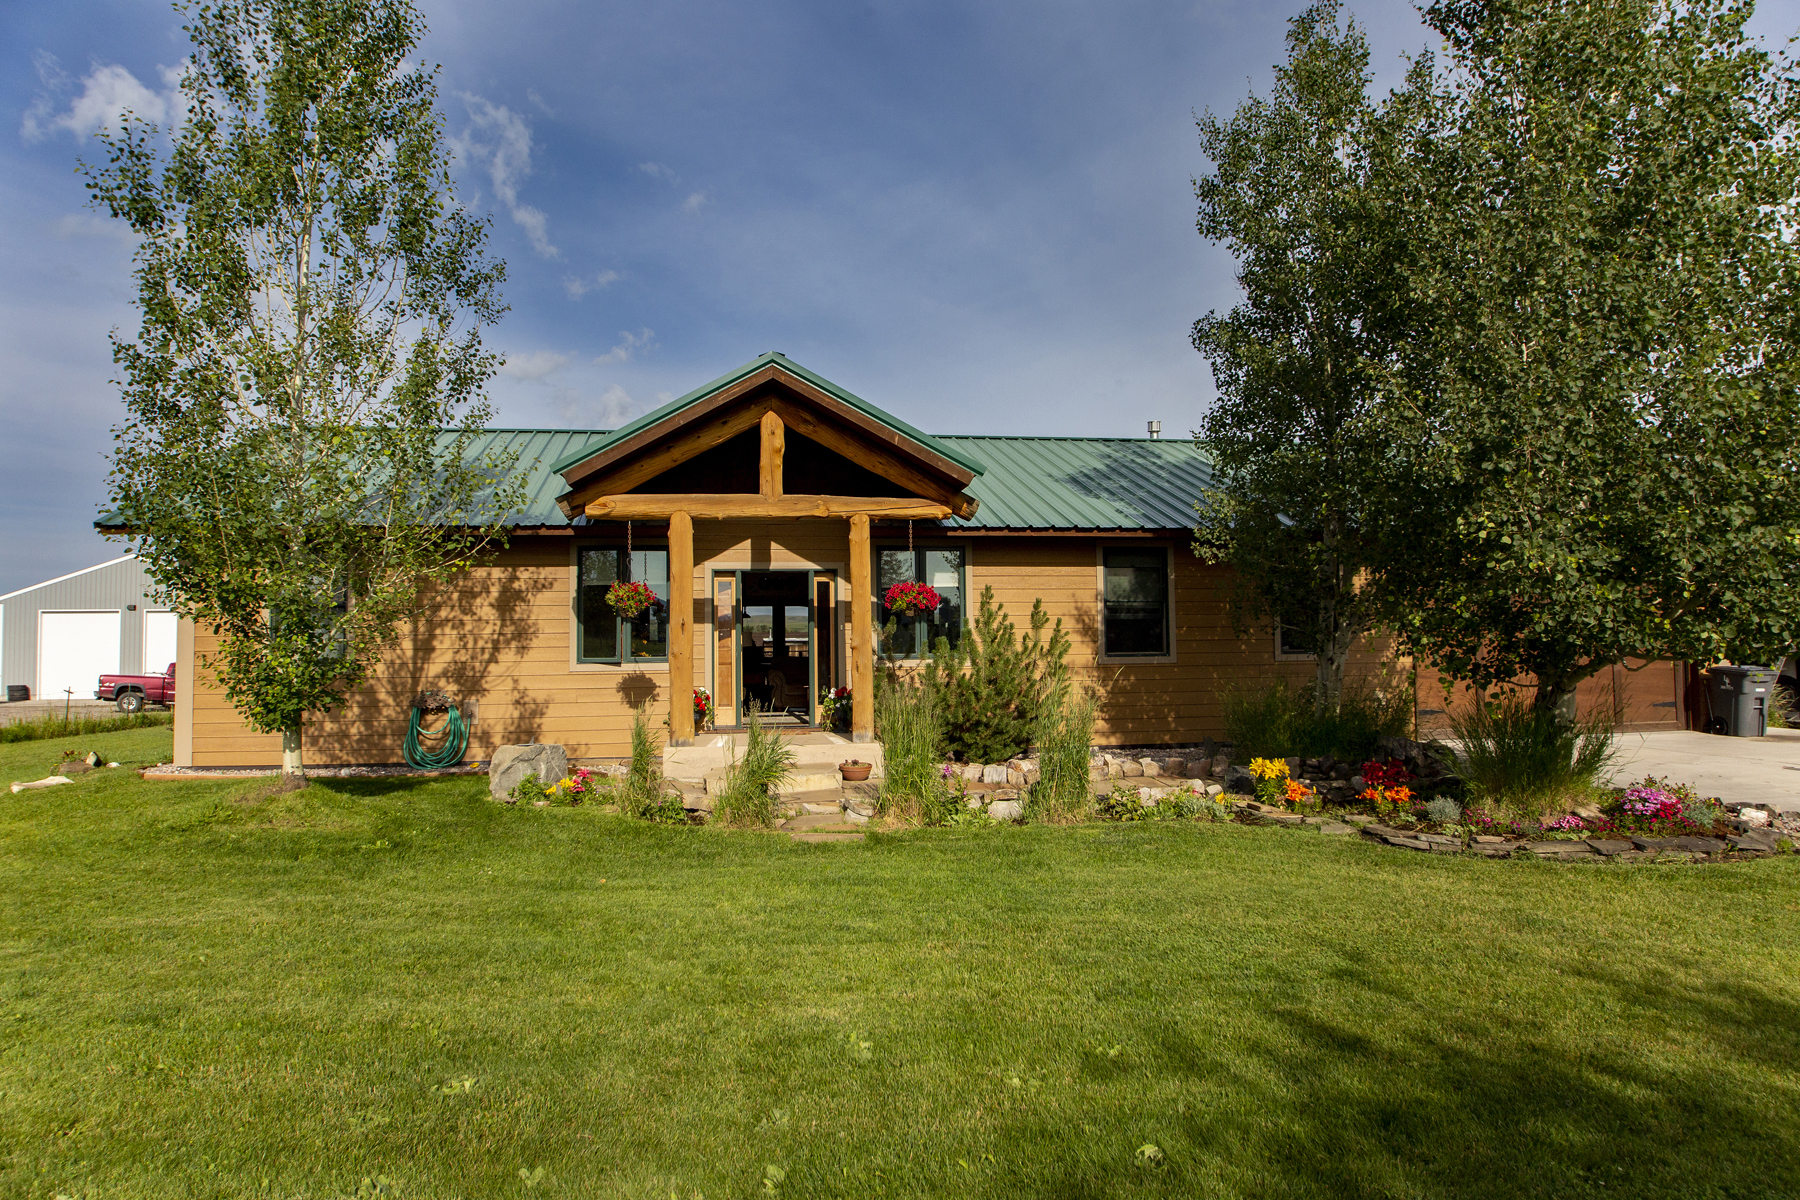 Single Family Homes for Sale at 405 Garnet Mountain Way Bozeman, Montana 59718 United States